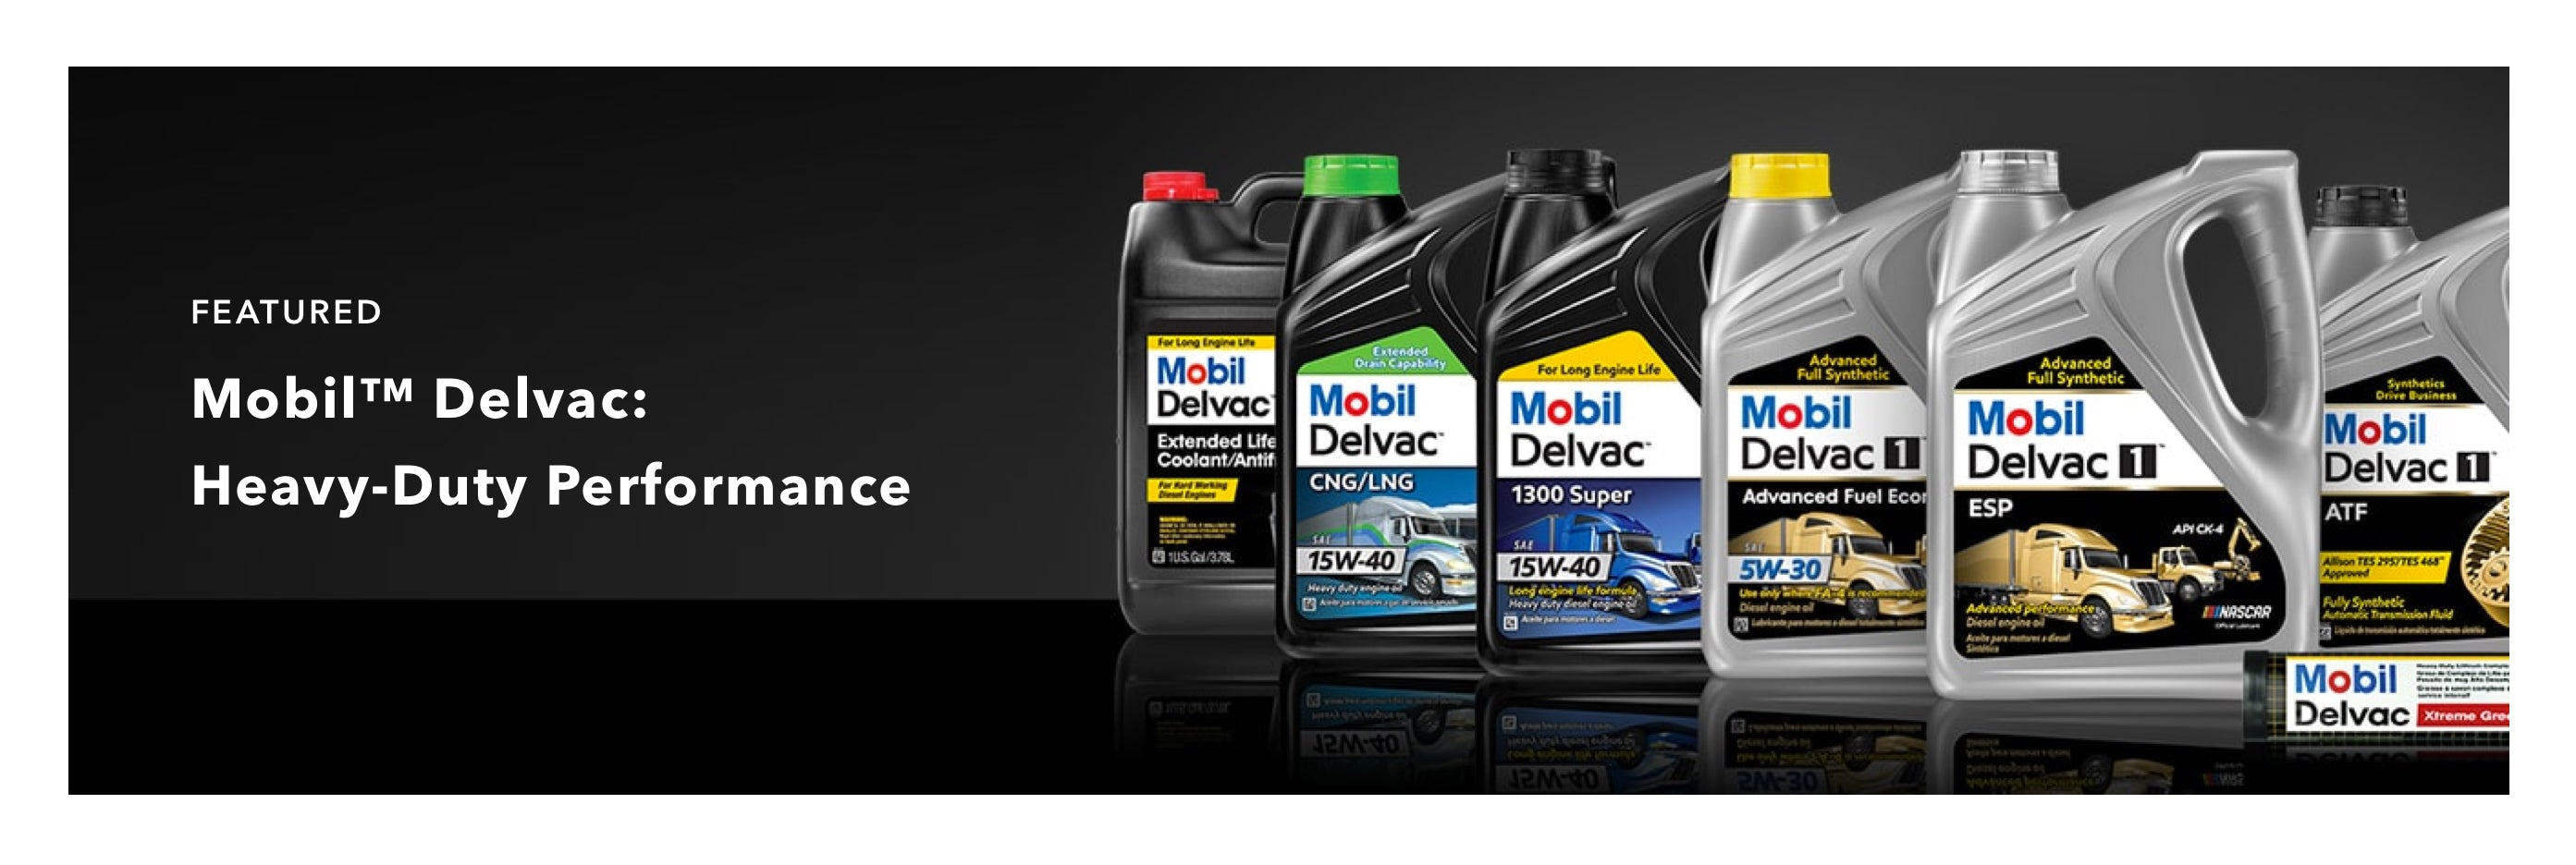 Mobil Delvac Advertisement - 6 motor oil canisters